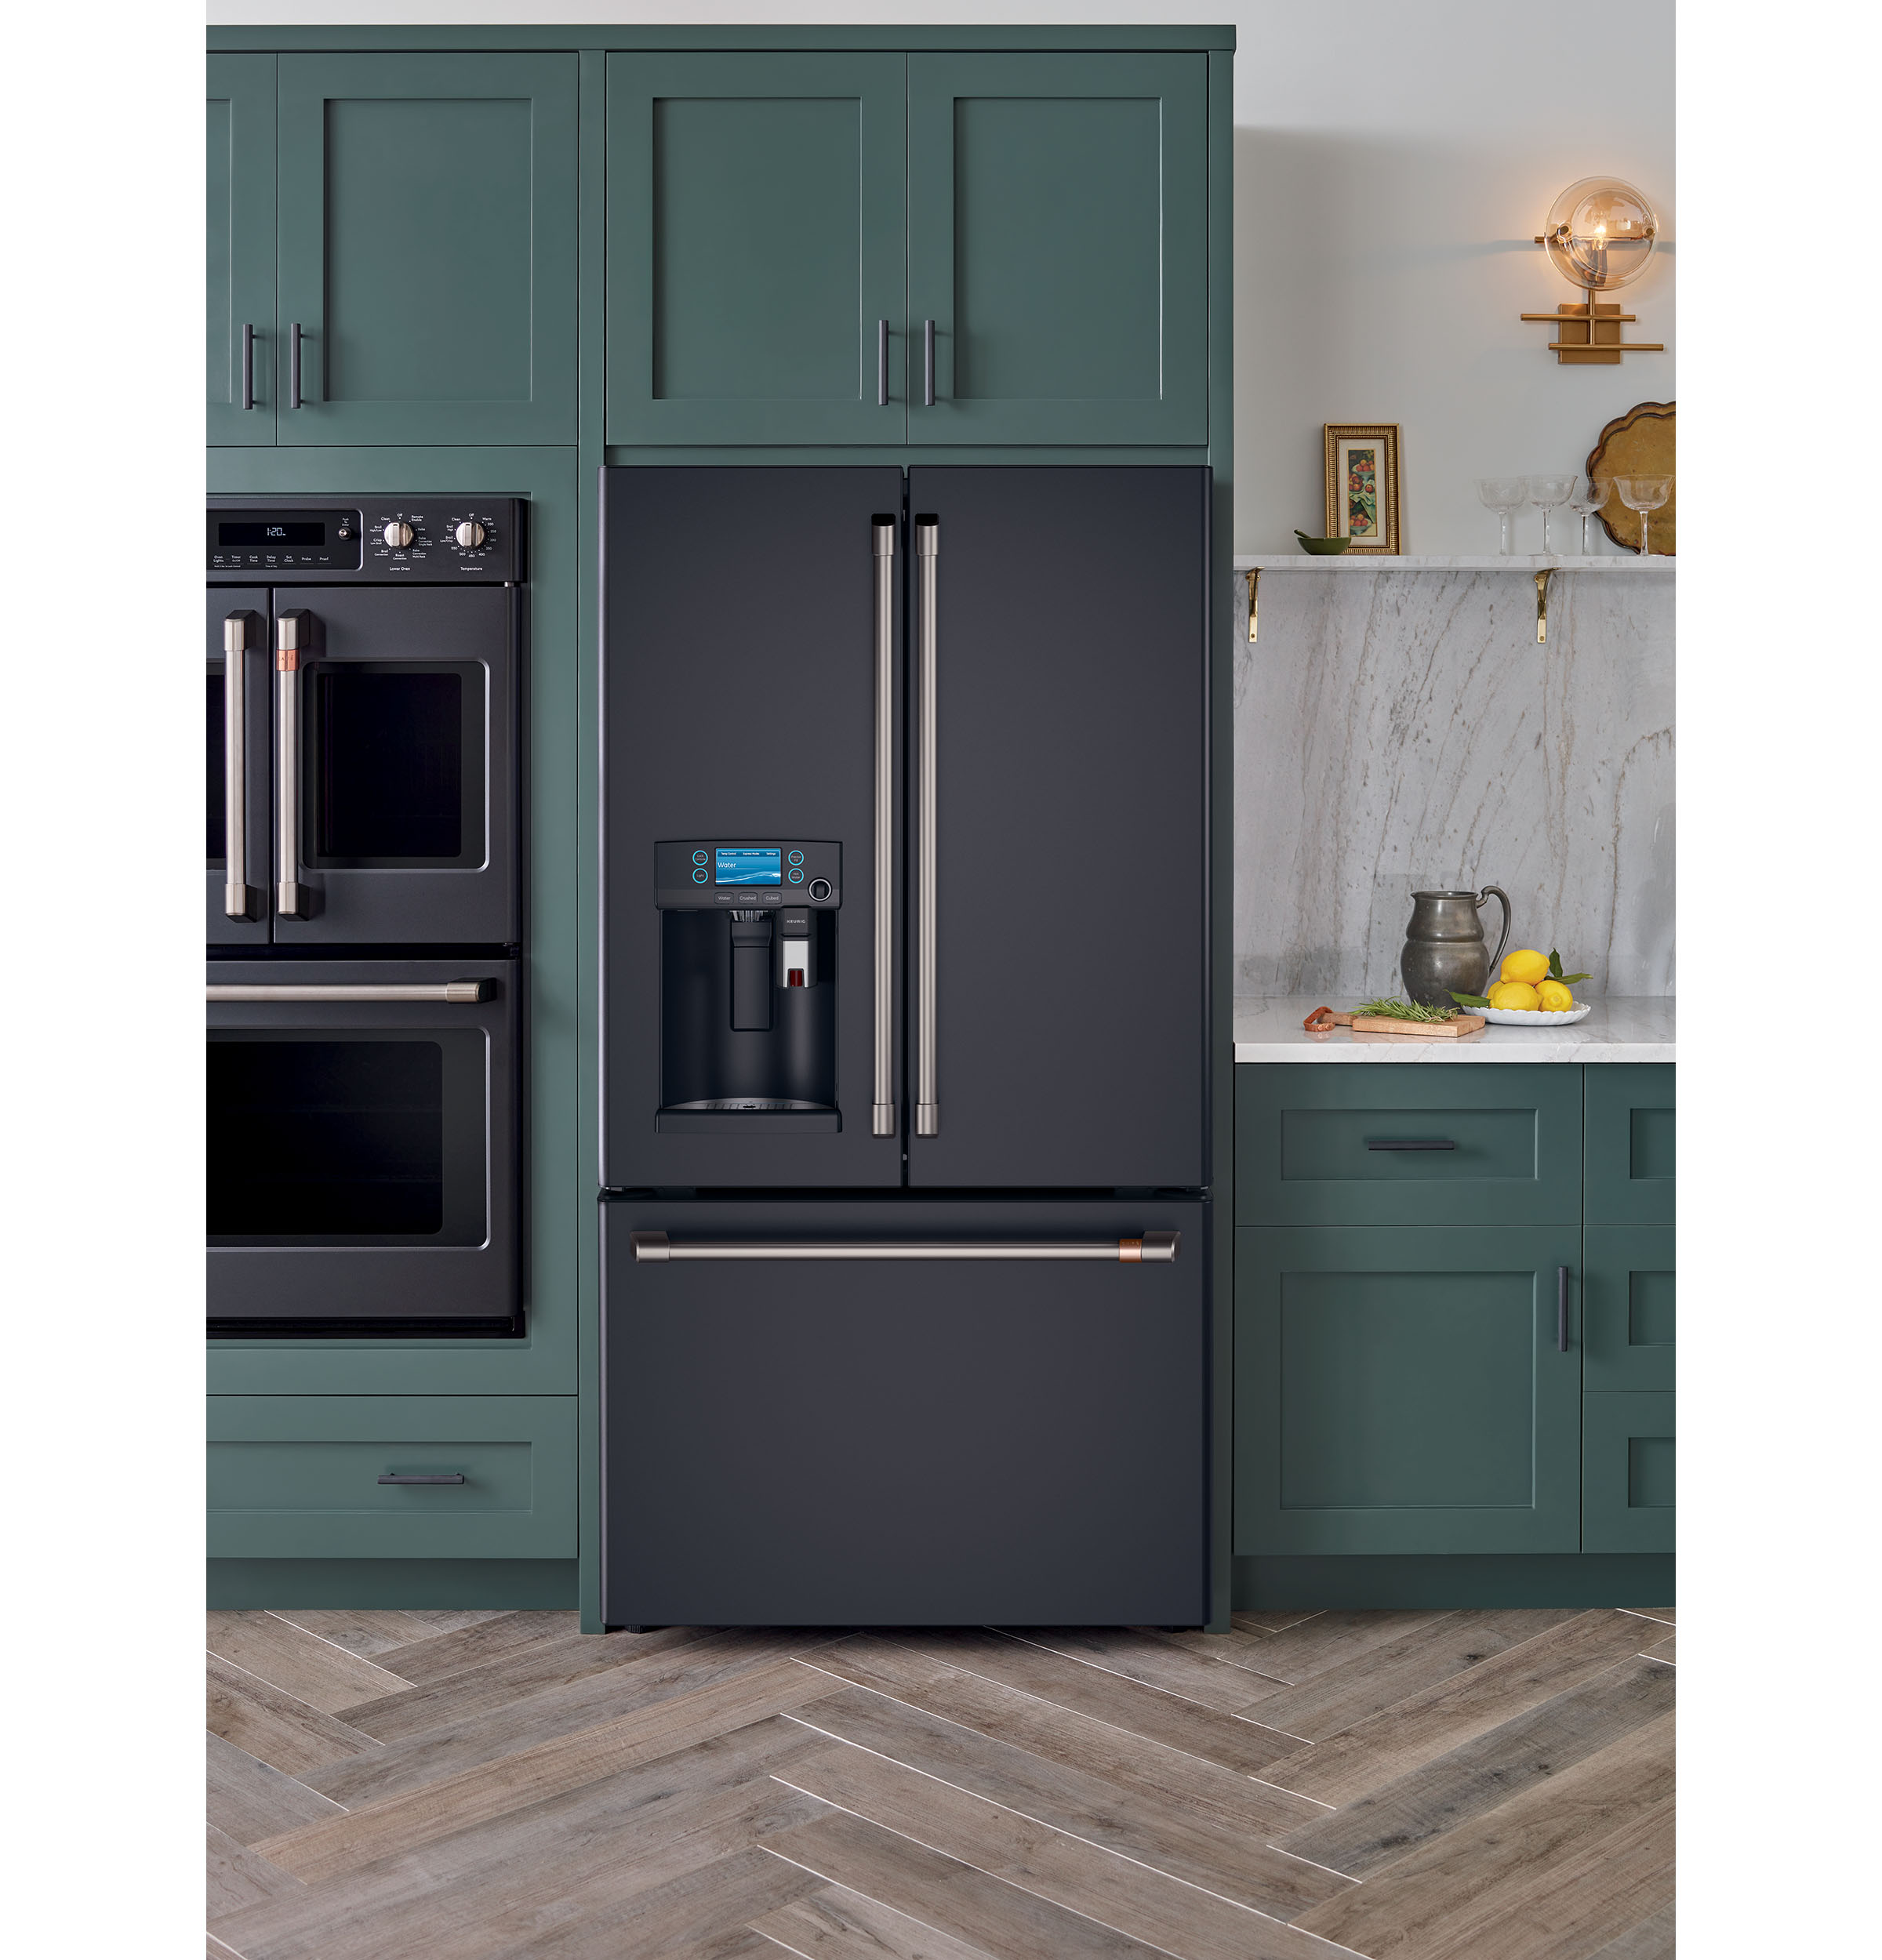 Model: CFE28UP3MD1 | Café™ ENERGY STAR® 27.8 Cu. Ft. French-Door Refrigerator with Keurig® K-Cup® Brewing System